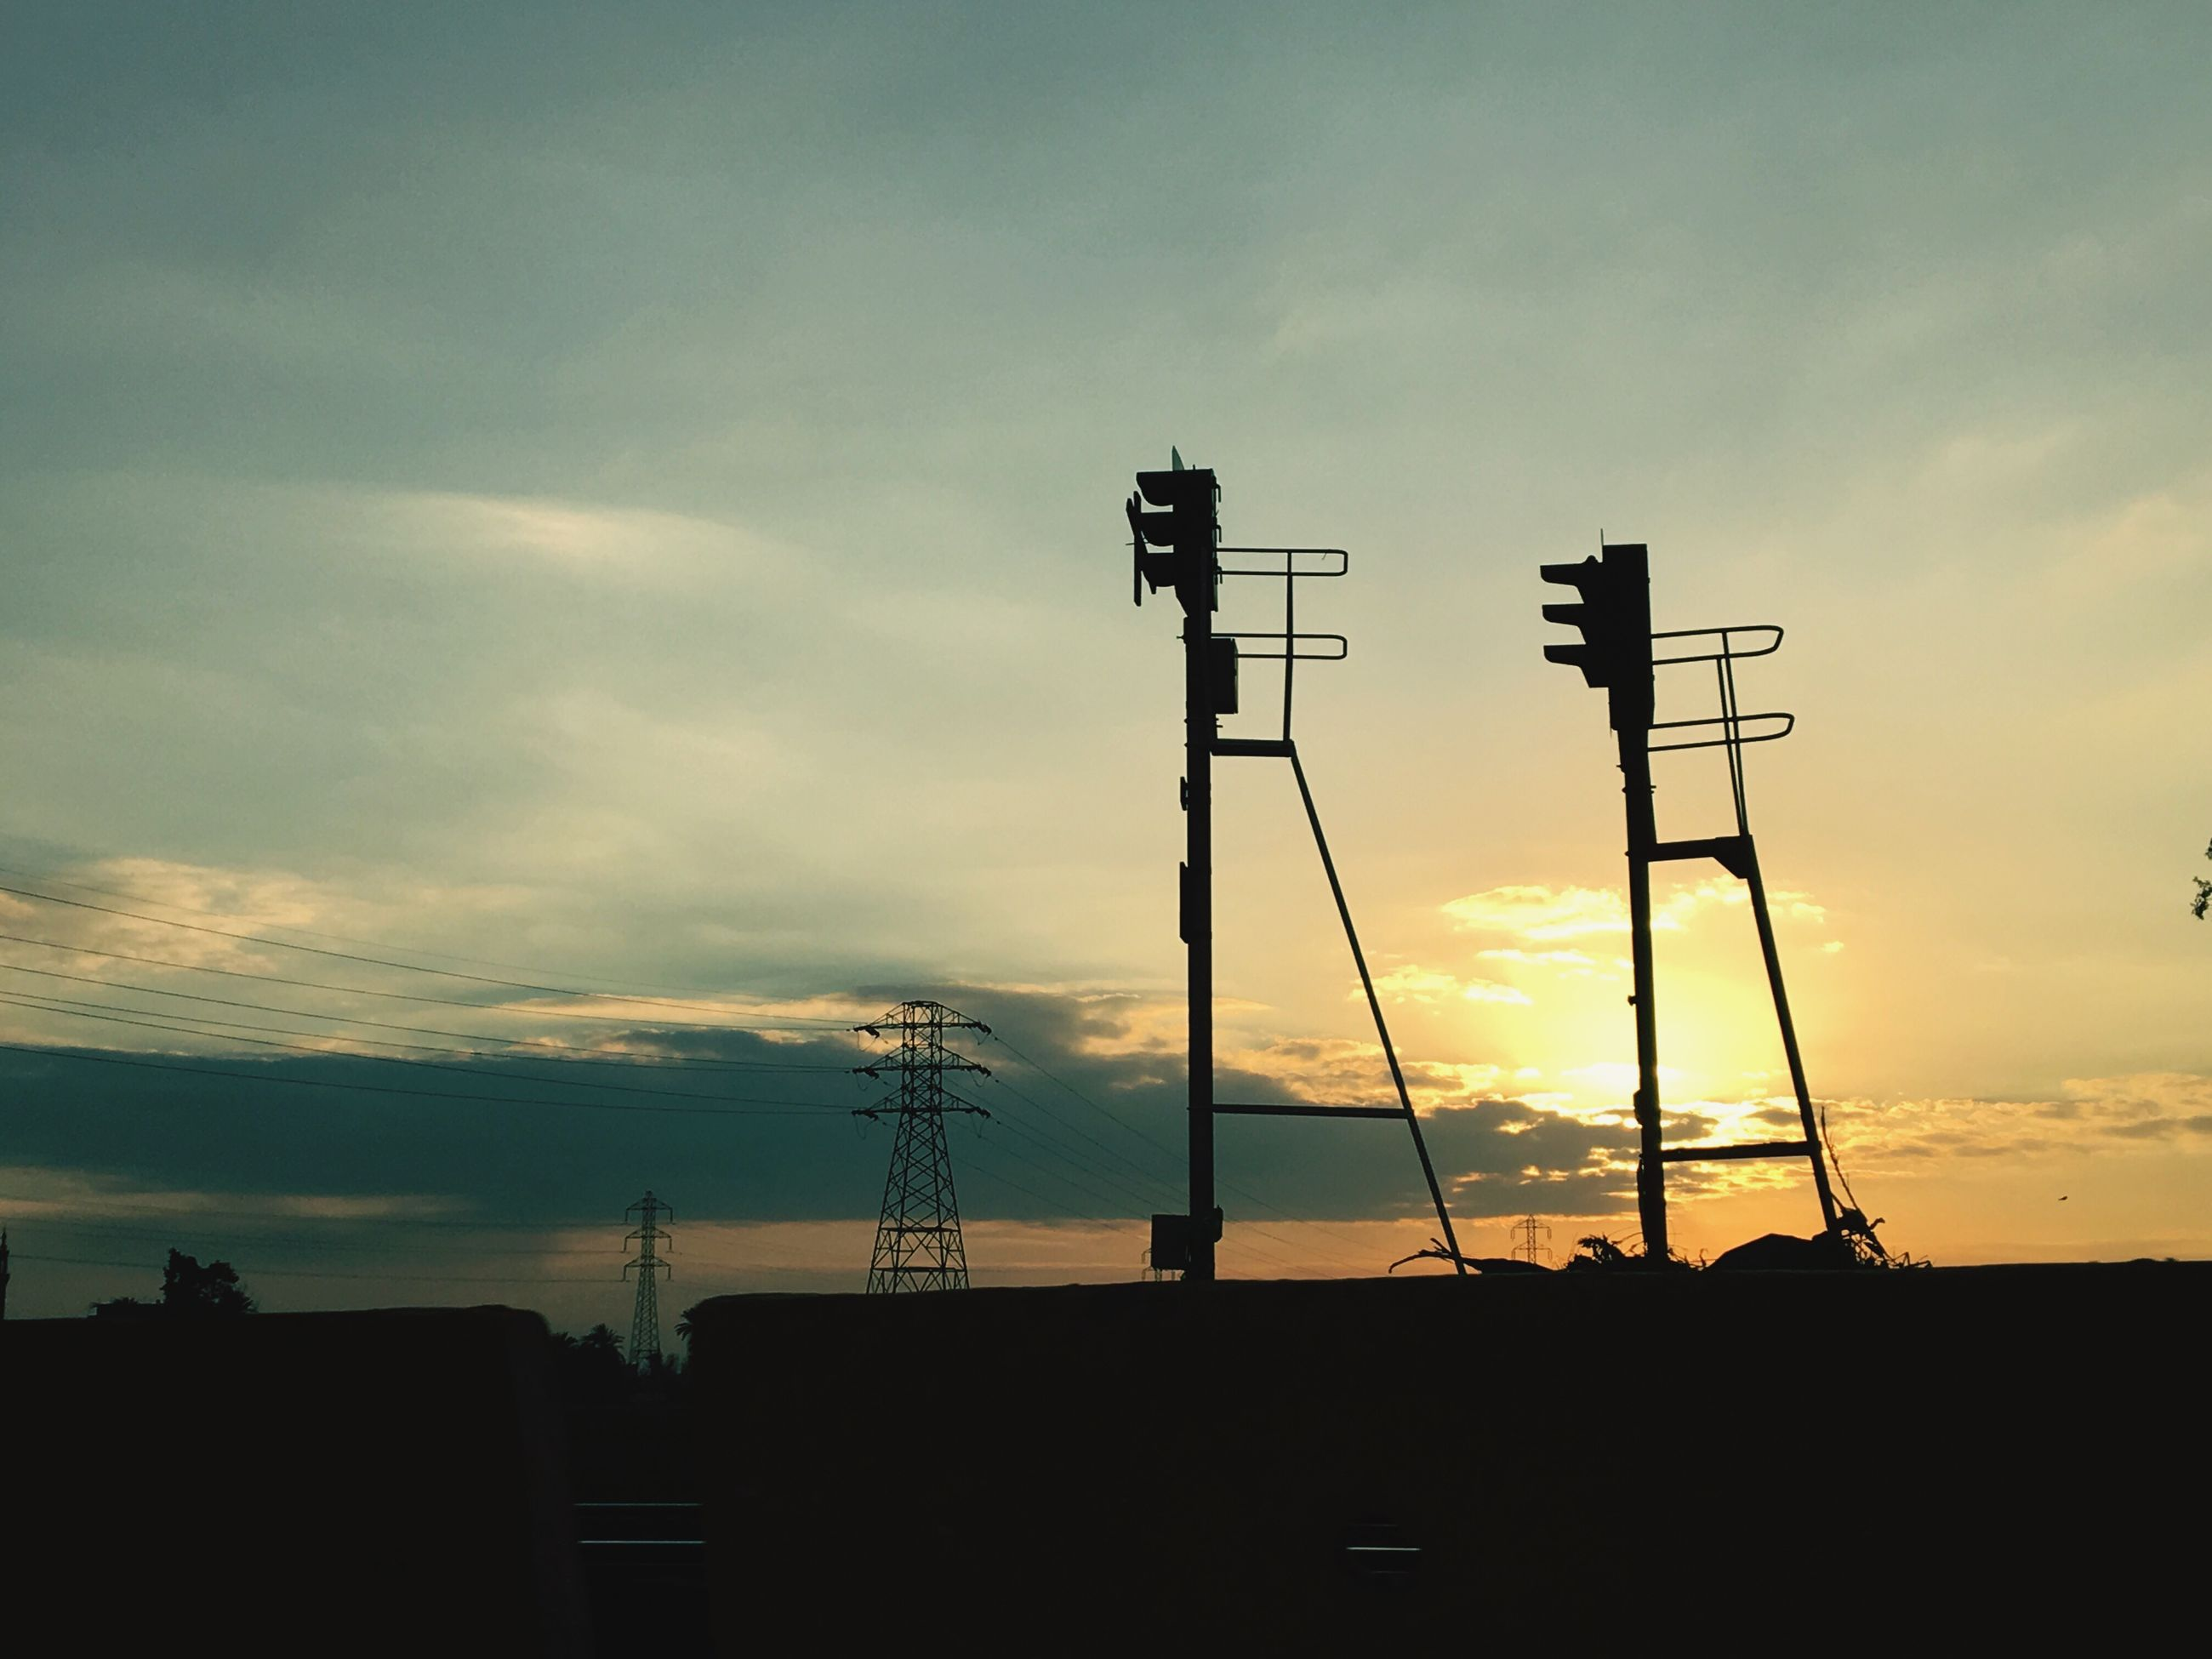 sunset, sky, silhouette, cloud - sky, low angle view, built structure, orange color, cloud, building exterior, architecture, cloudy, nature, beauty in nature, scenics, outdoors, no people, tranquility, technology, fuel and power generation, dusk